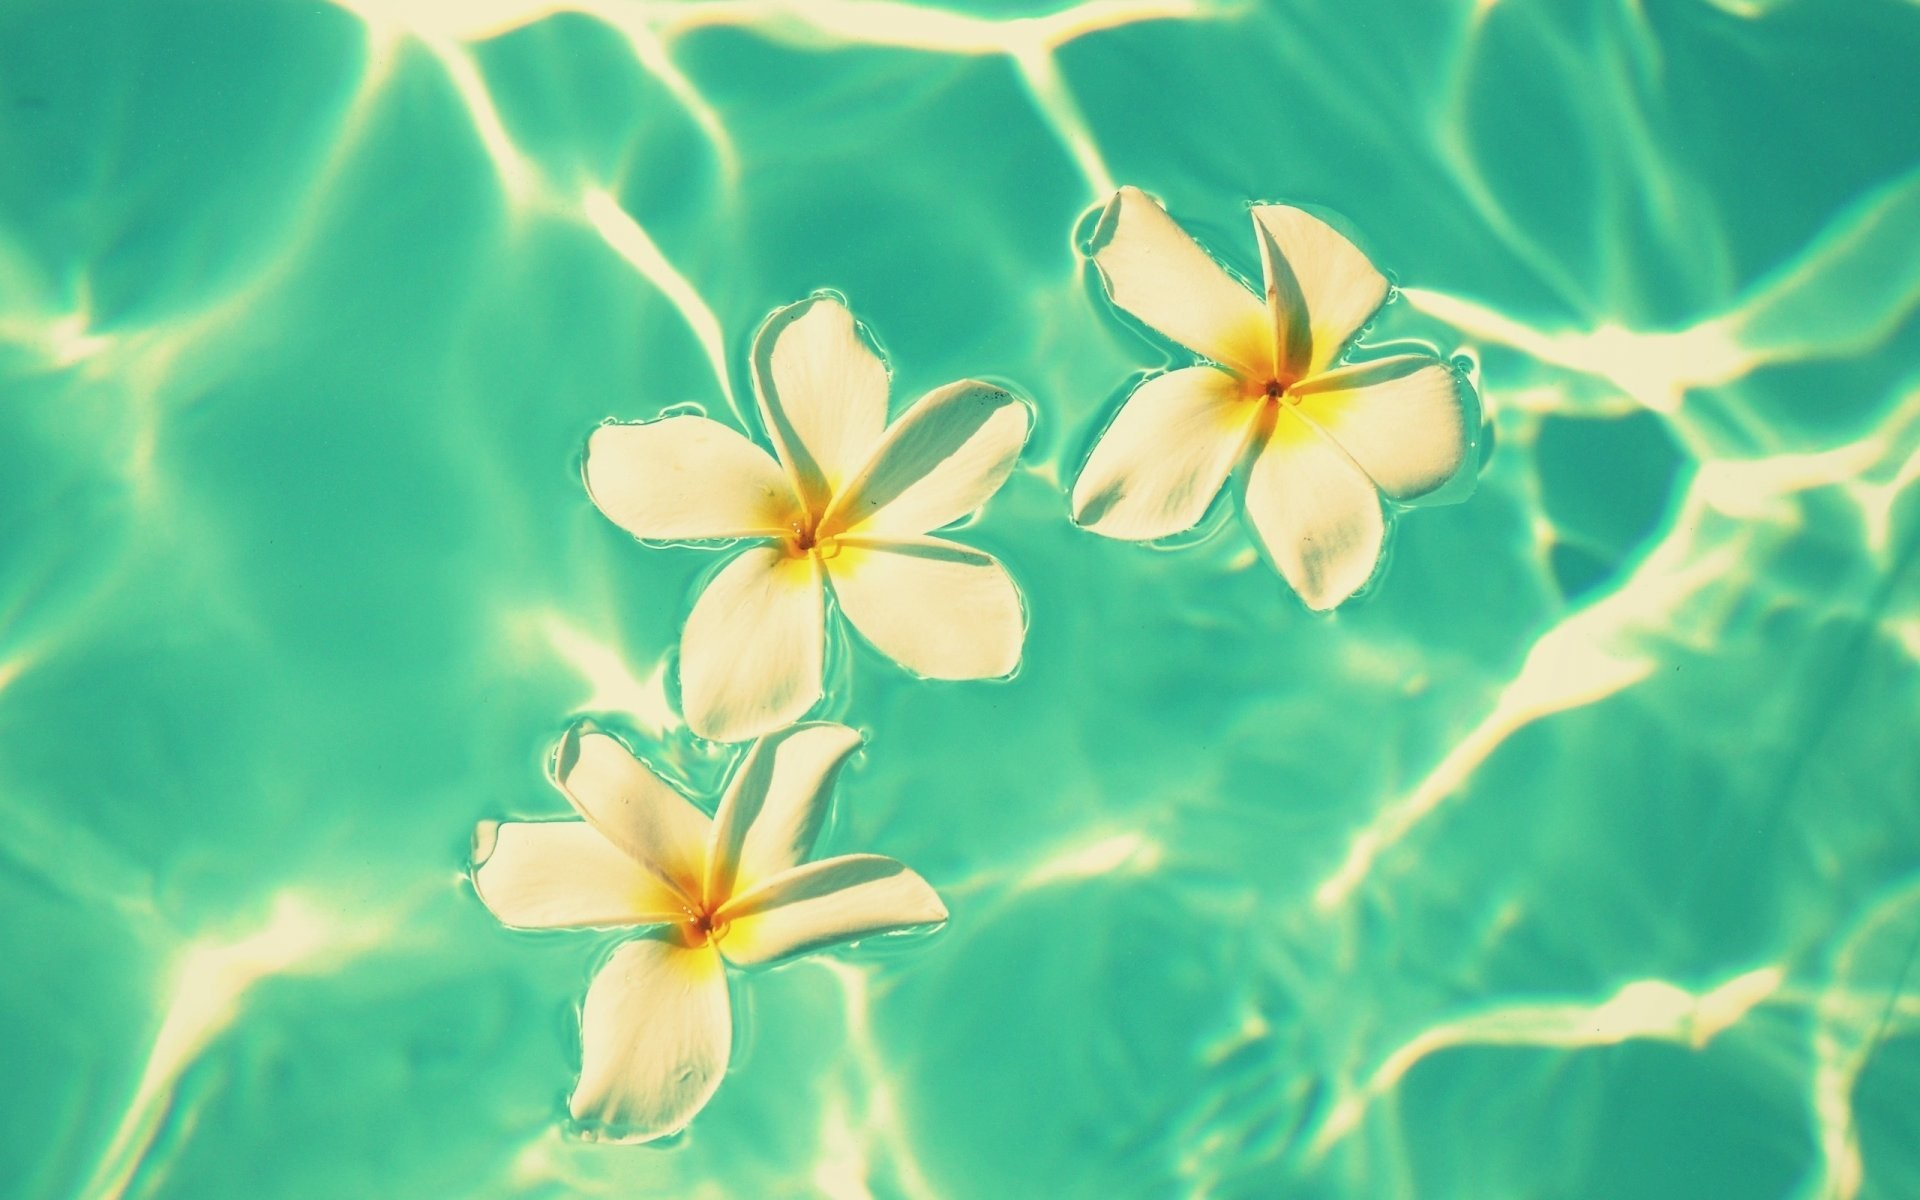 1920x1200 flower flowers flowers flower frangipani plumeria white water waves blue  flowers background wallpaper widescreen full screen